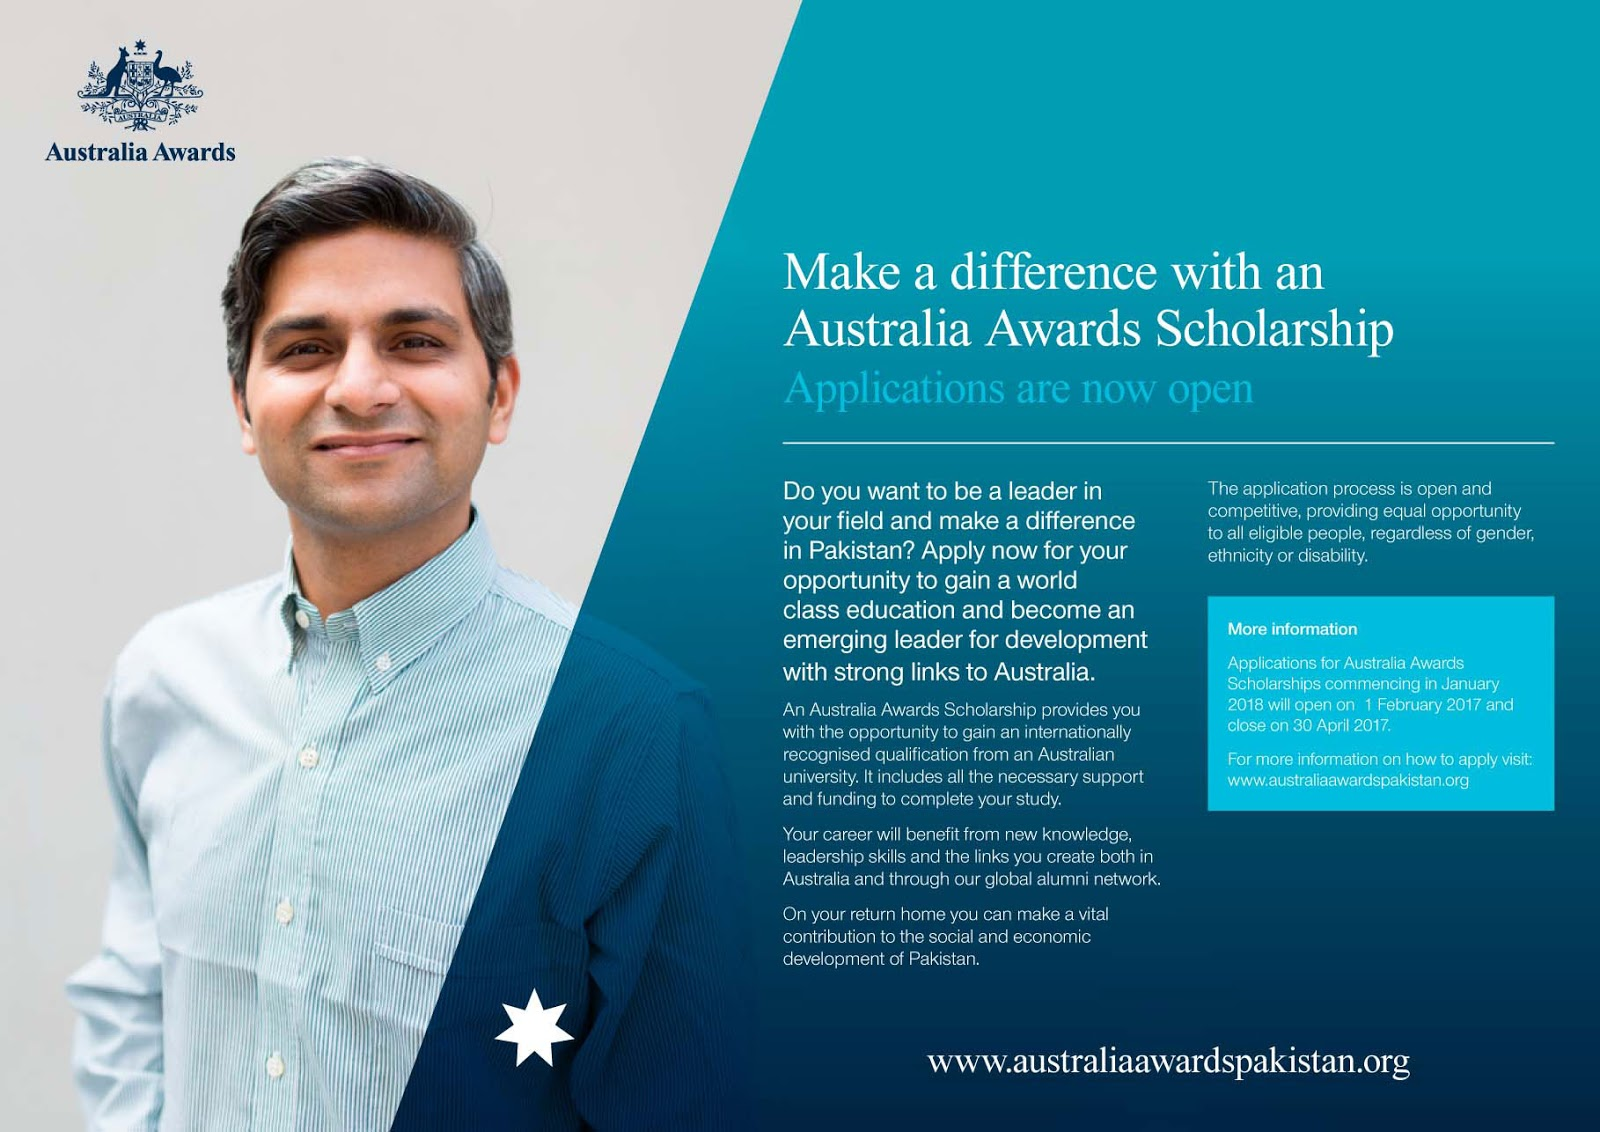 HEC Announcements Australia Awards Scholarships